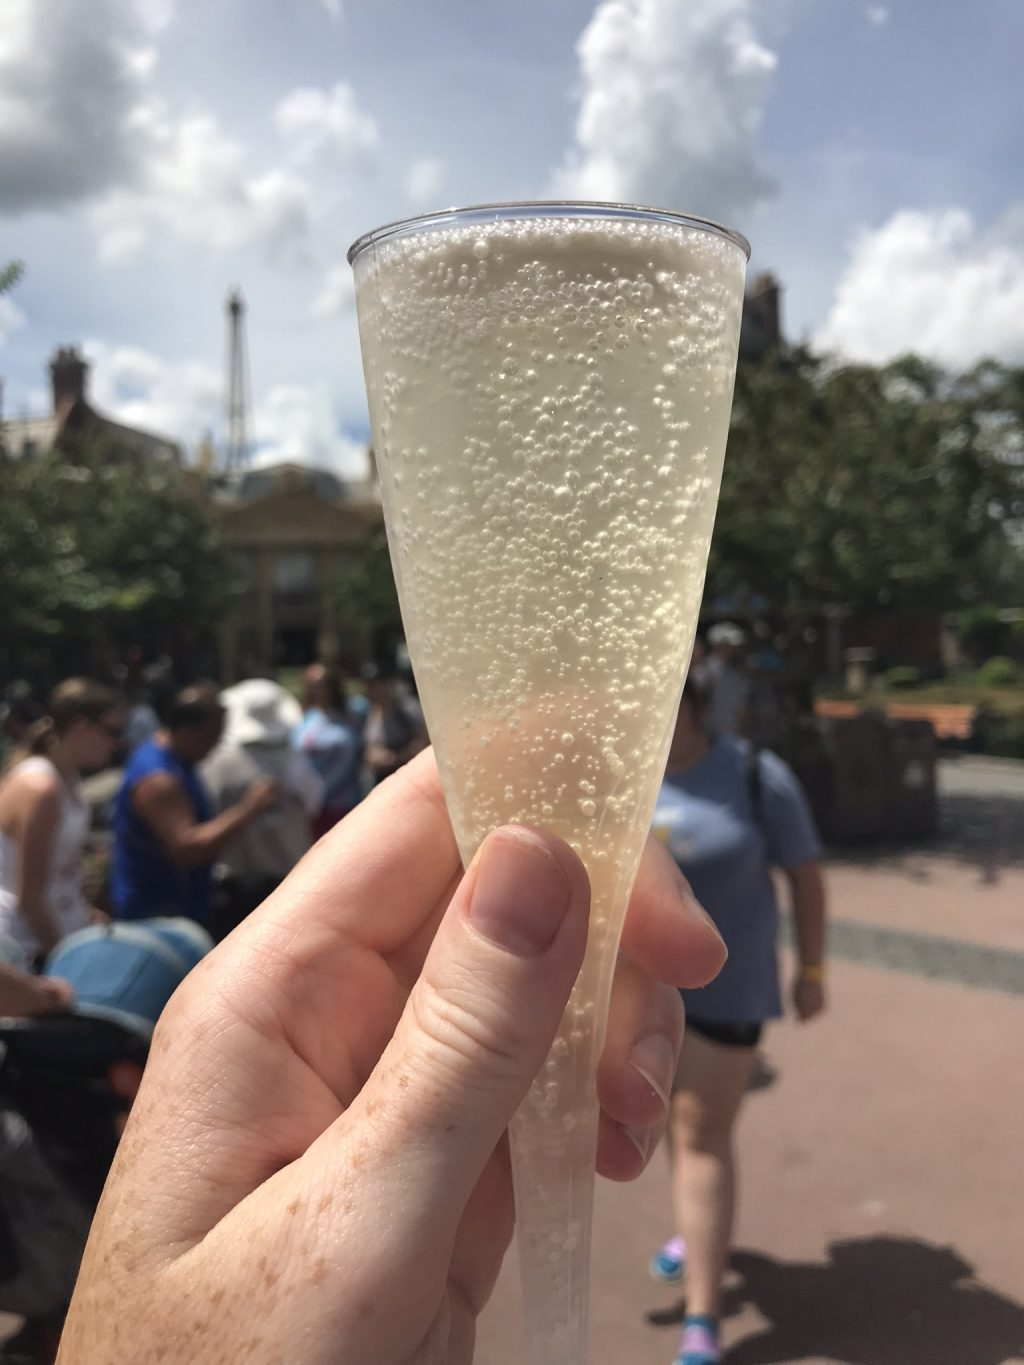 bubbly adult beverage with people in the background